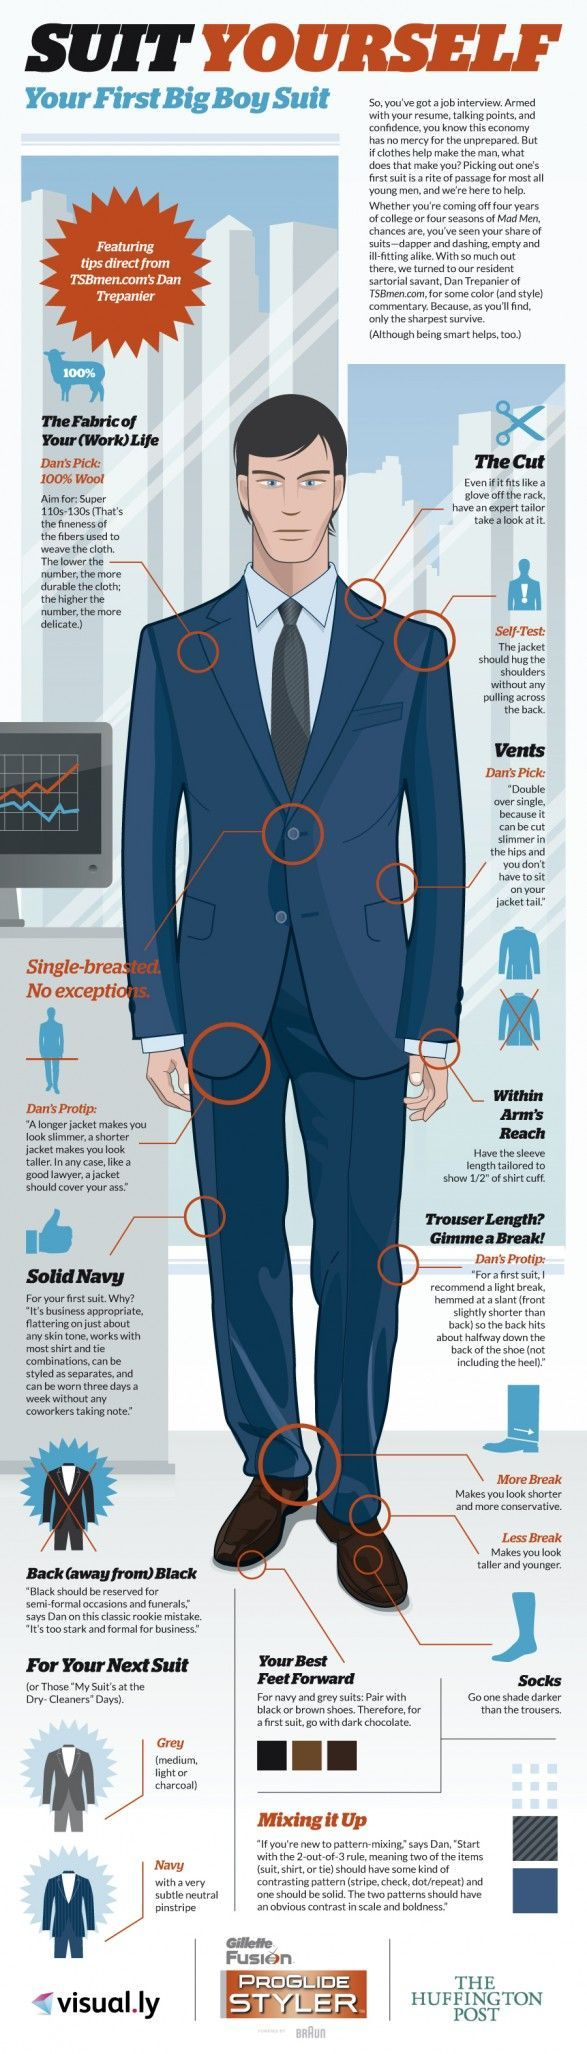 Suit Yourself: Your First Big Boy Suit Men style